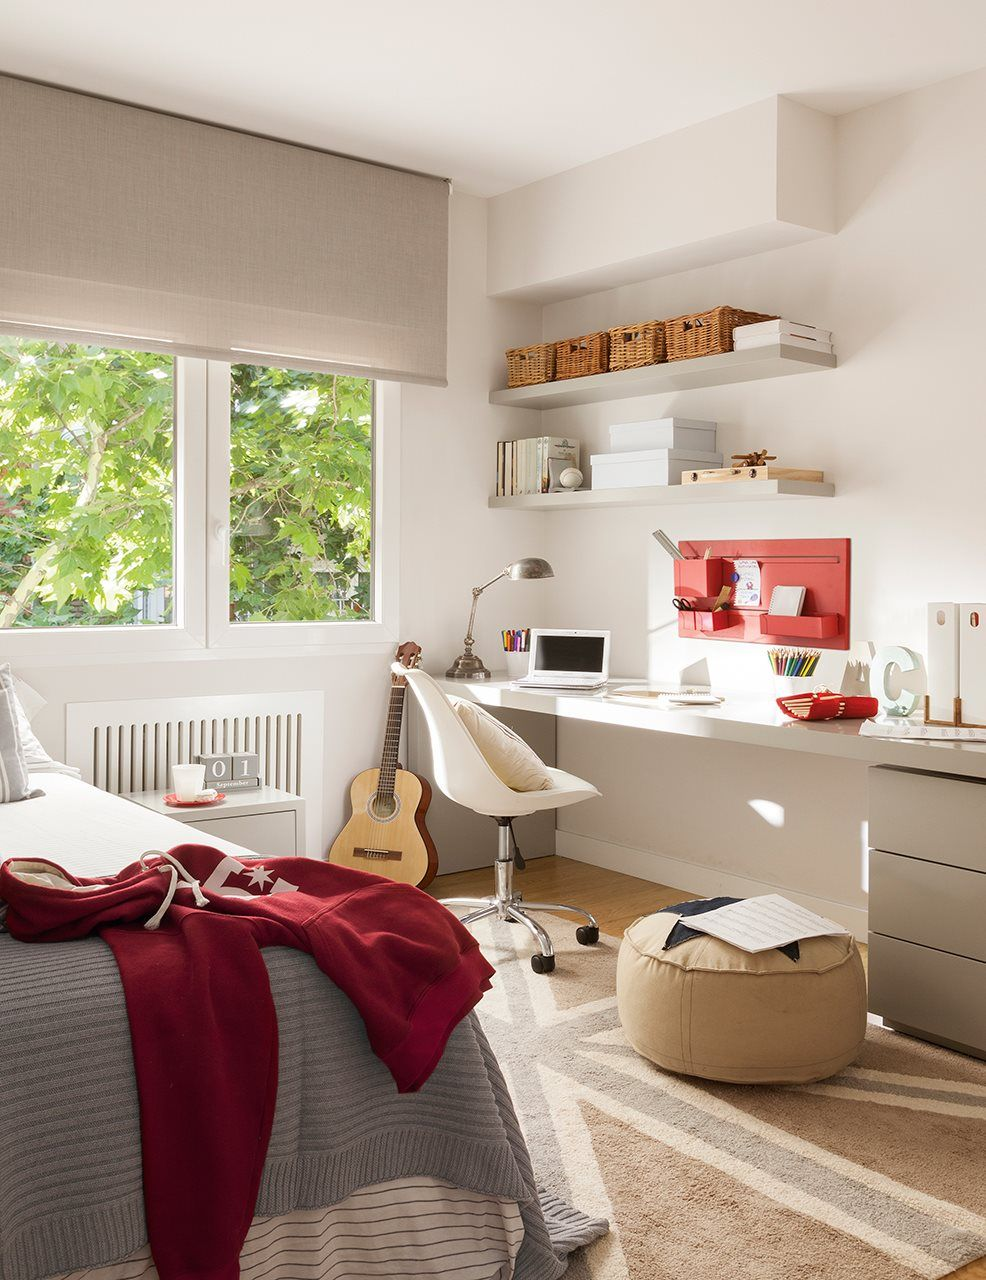 En 2019 cool ideas muebles dormitorio for Cortinas habitacion juvenil